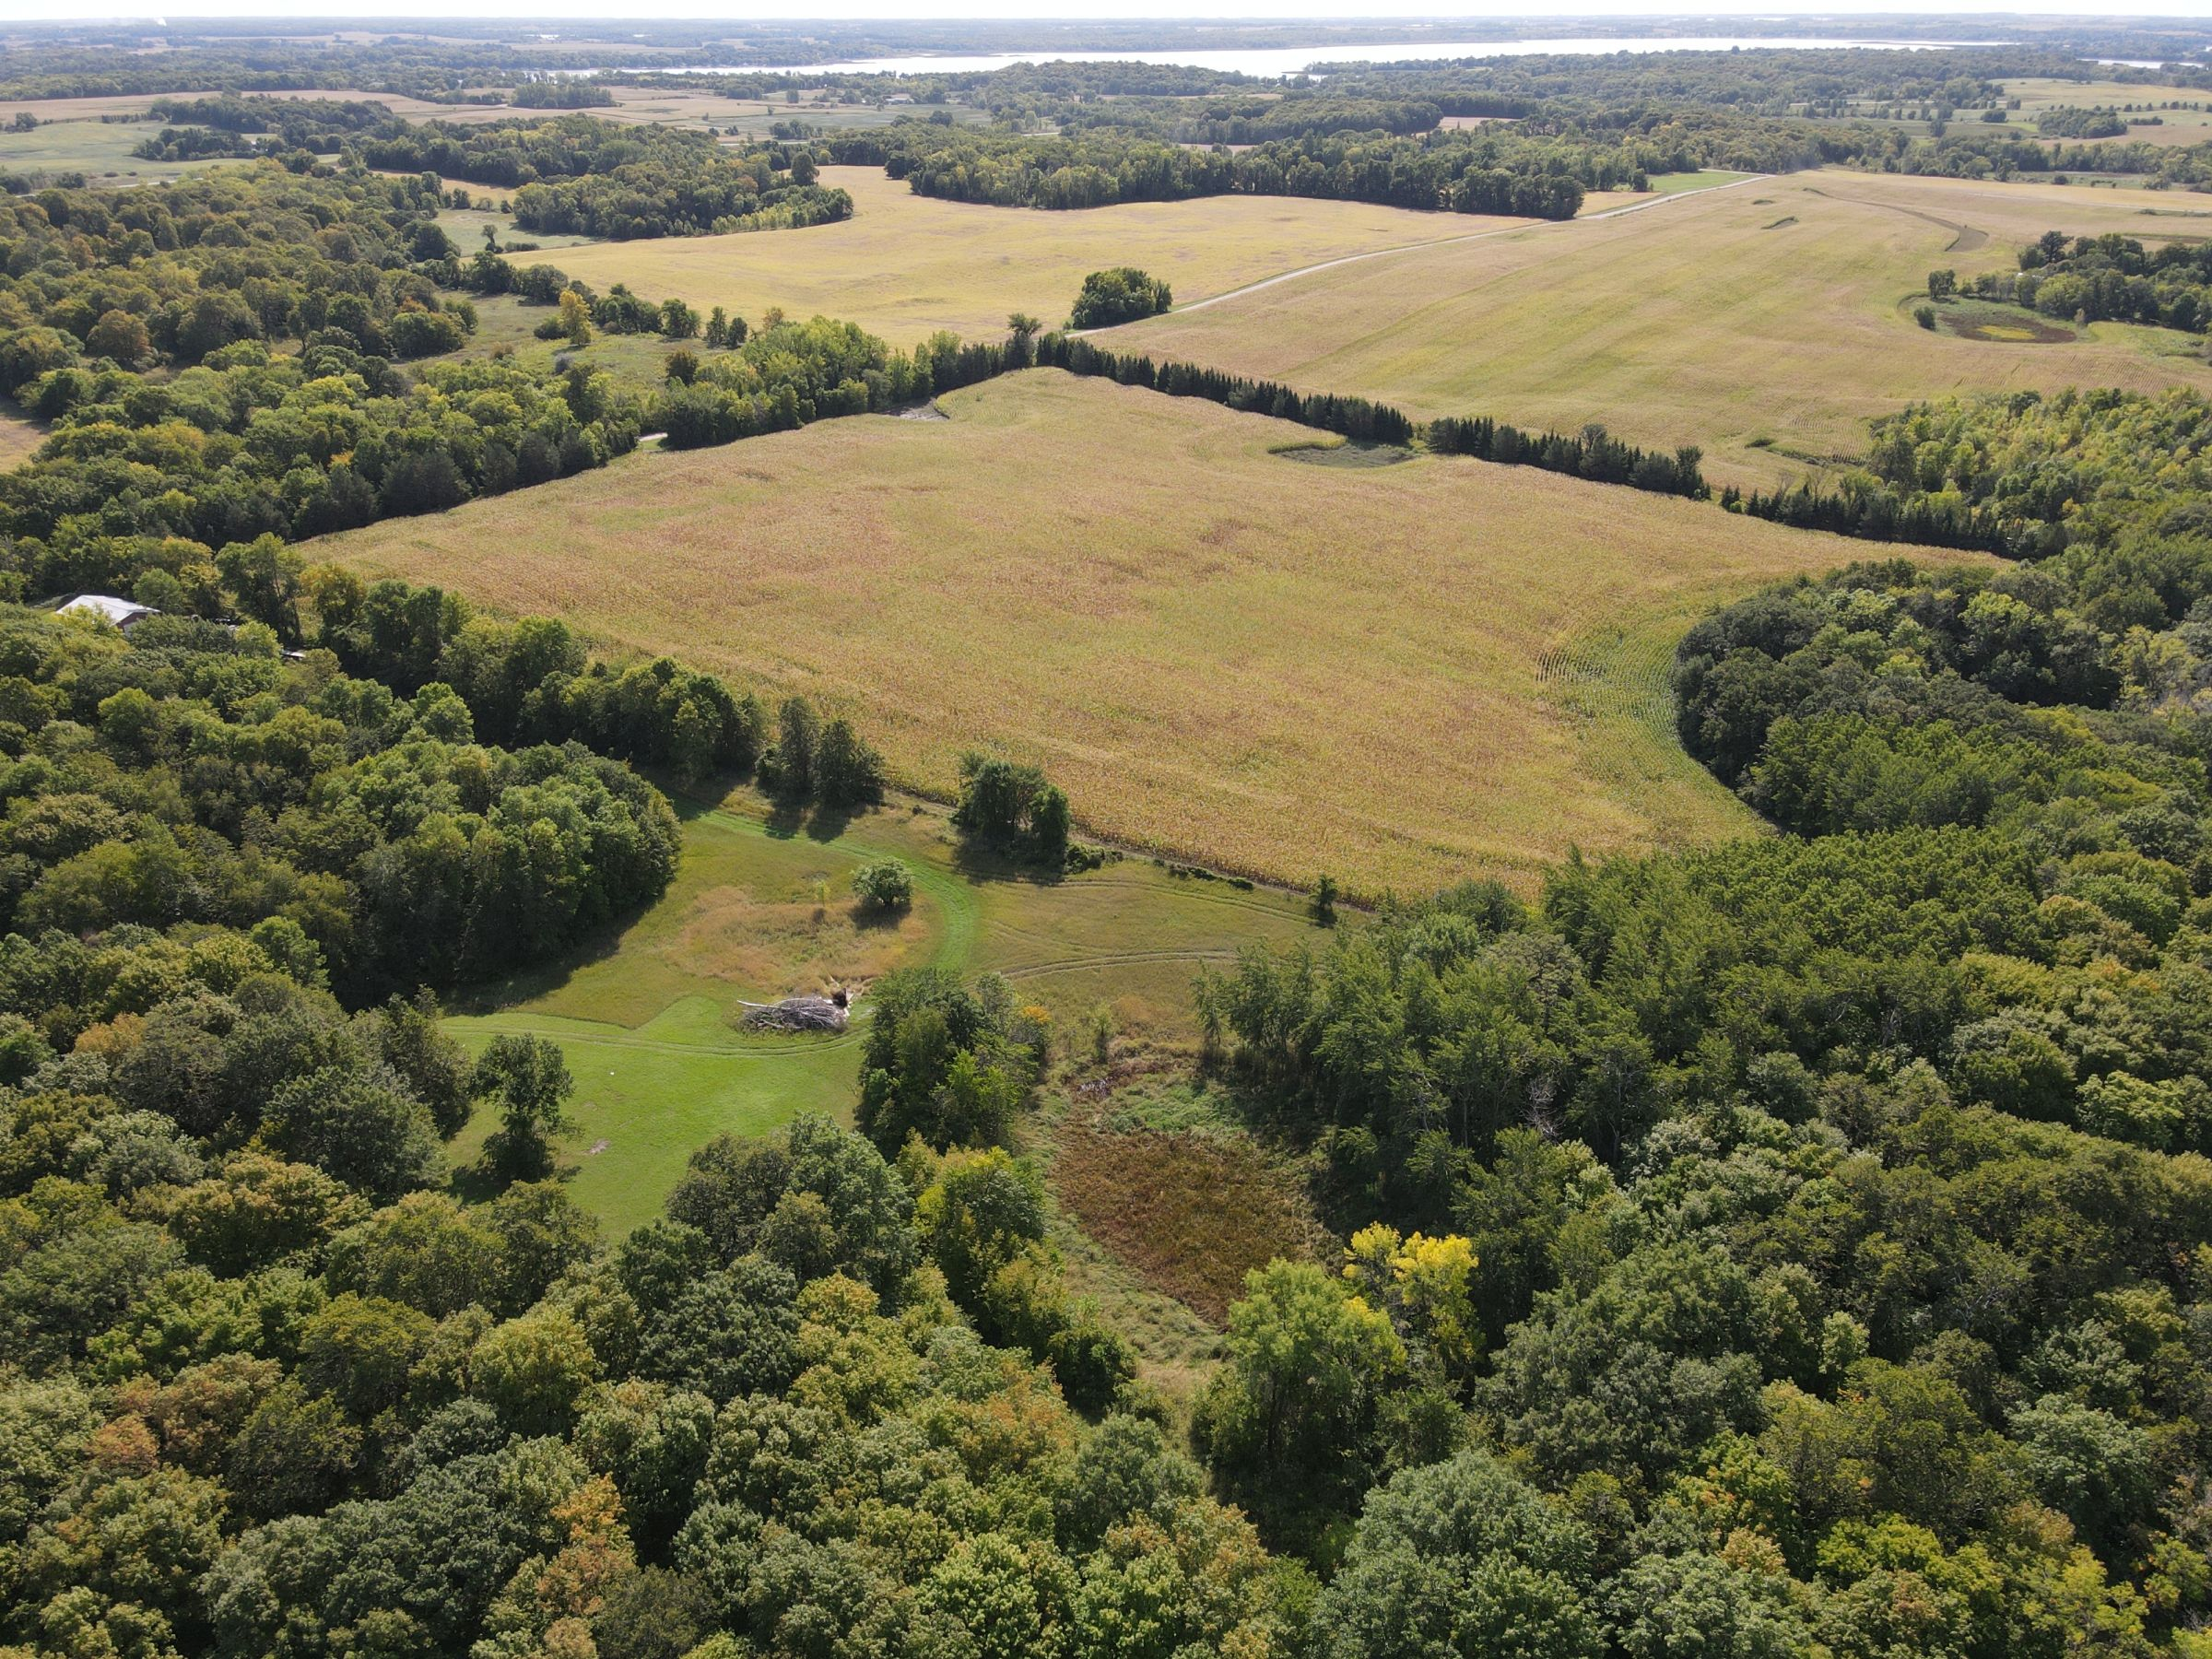 residential-auctions-development-land-commercial-douglas-county-minnesota-40-acres-listing-number-15777-0-2021-09-28-162325.JPG